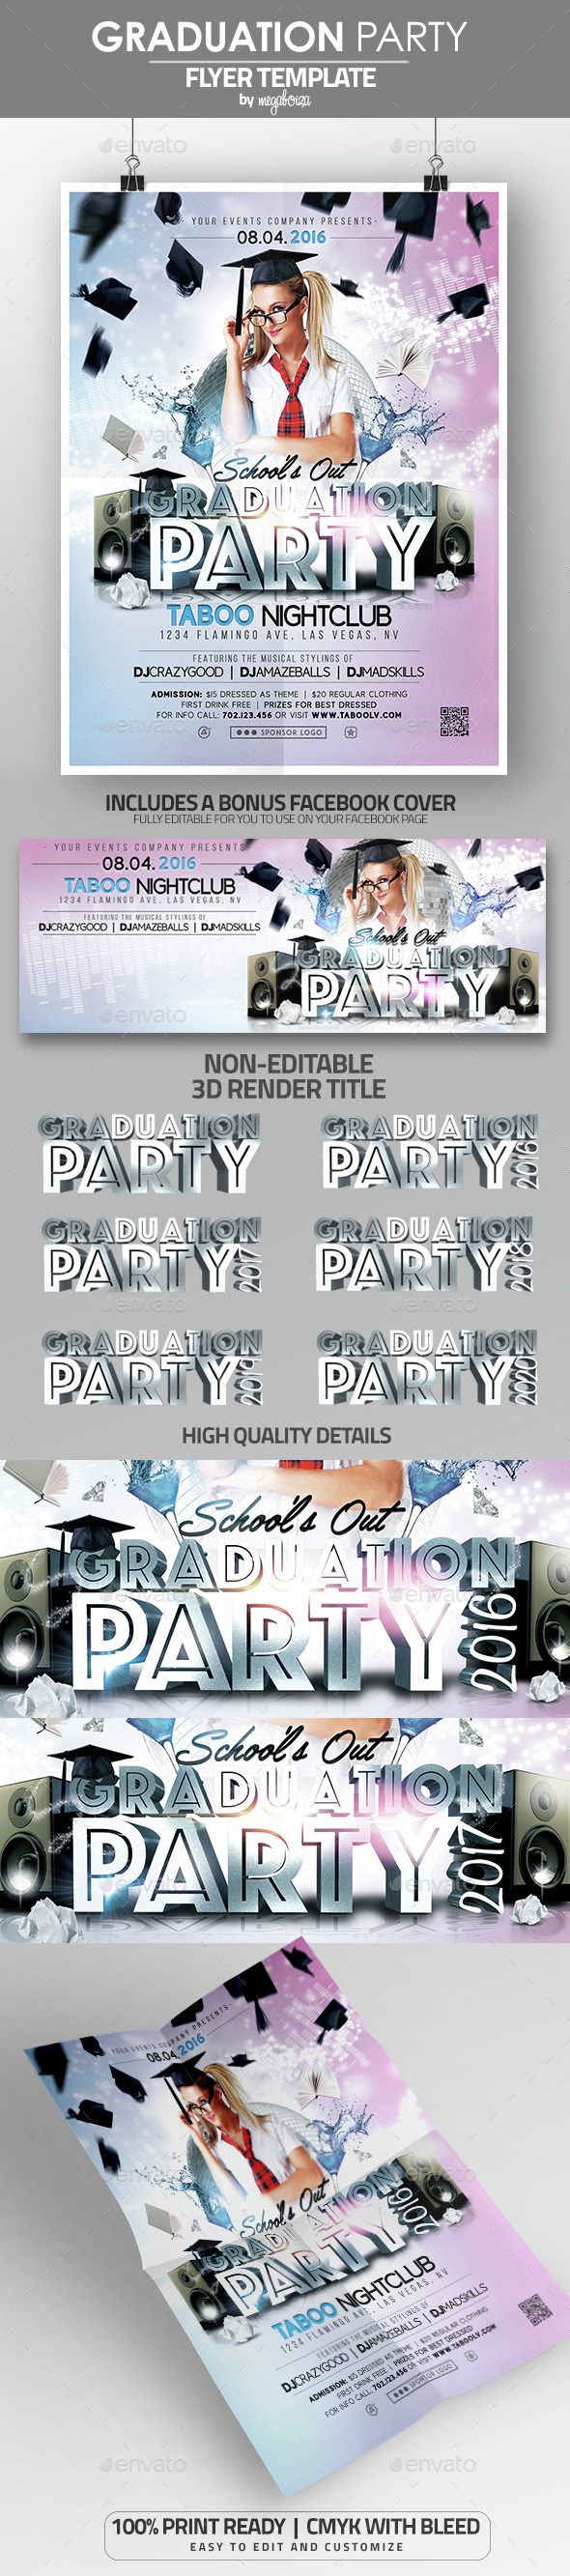 Graduation Party Flyer / Poster Template - Clubs & Parties Events